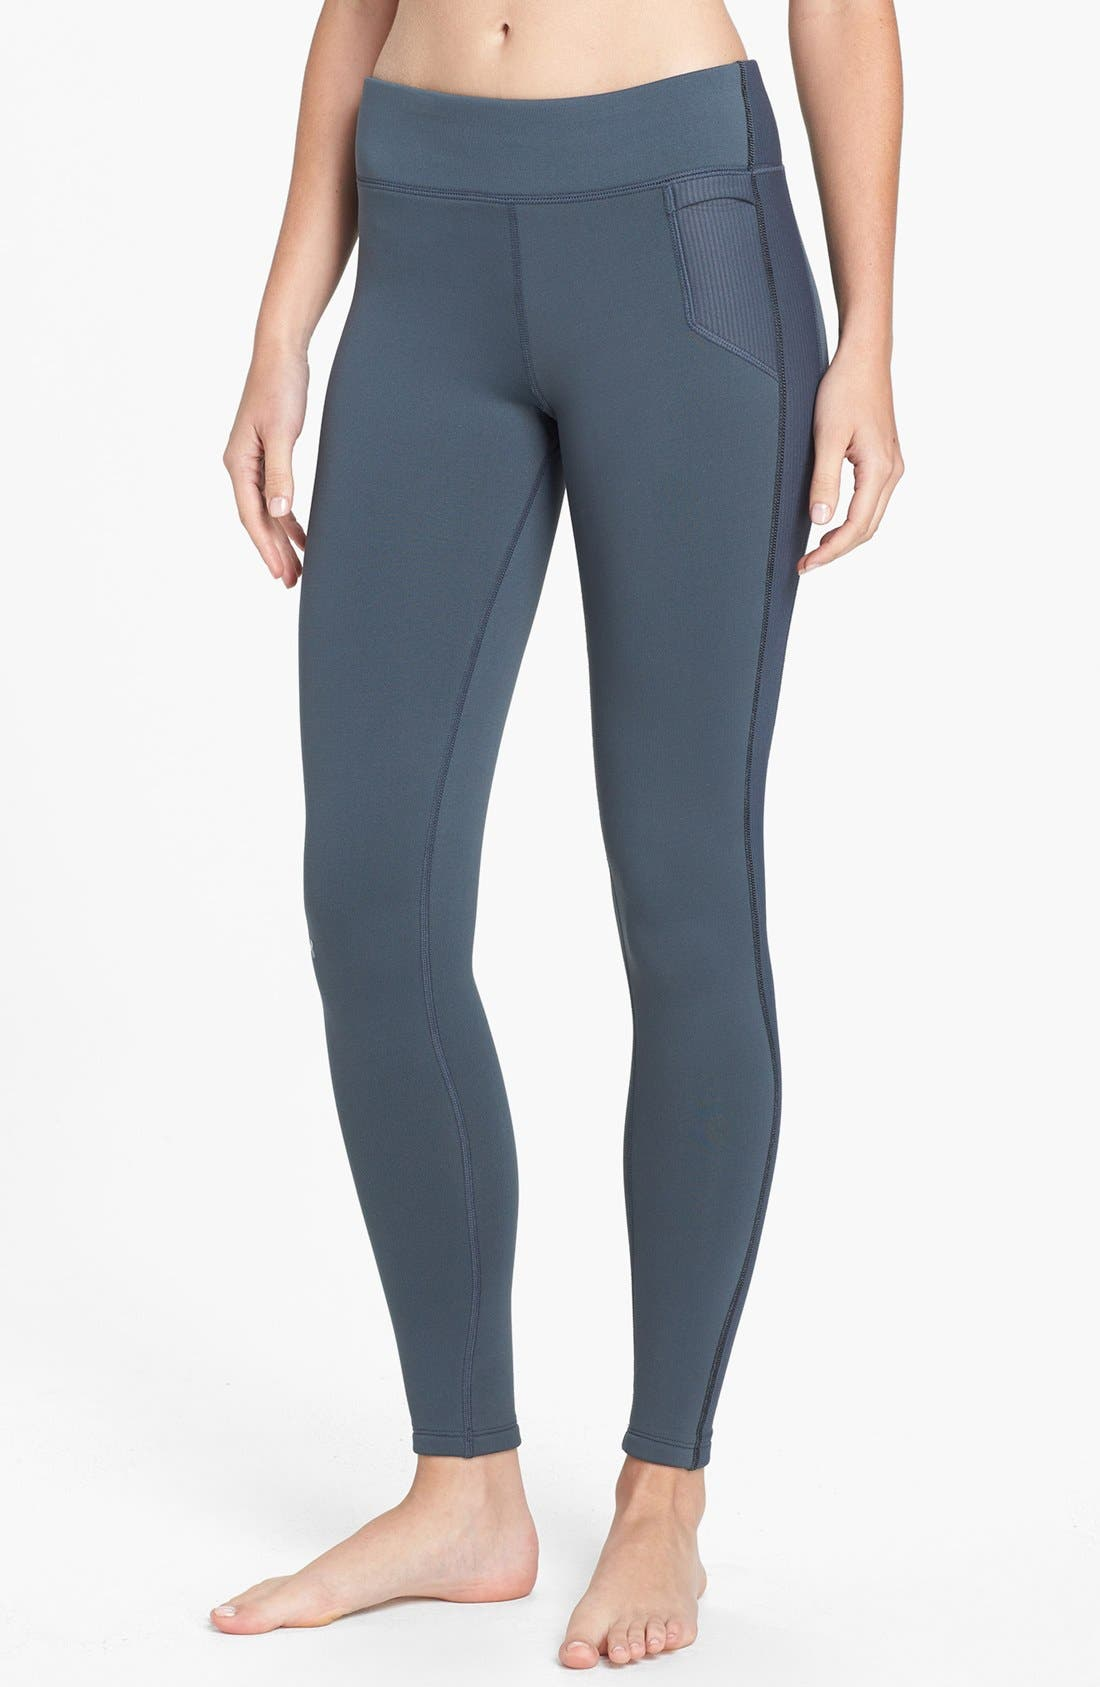 Alternate Image 1 Selected - Under Armour 'Stretch' Compression Tights